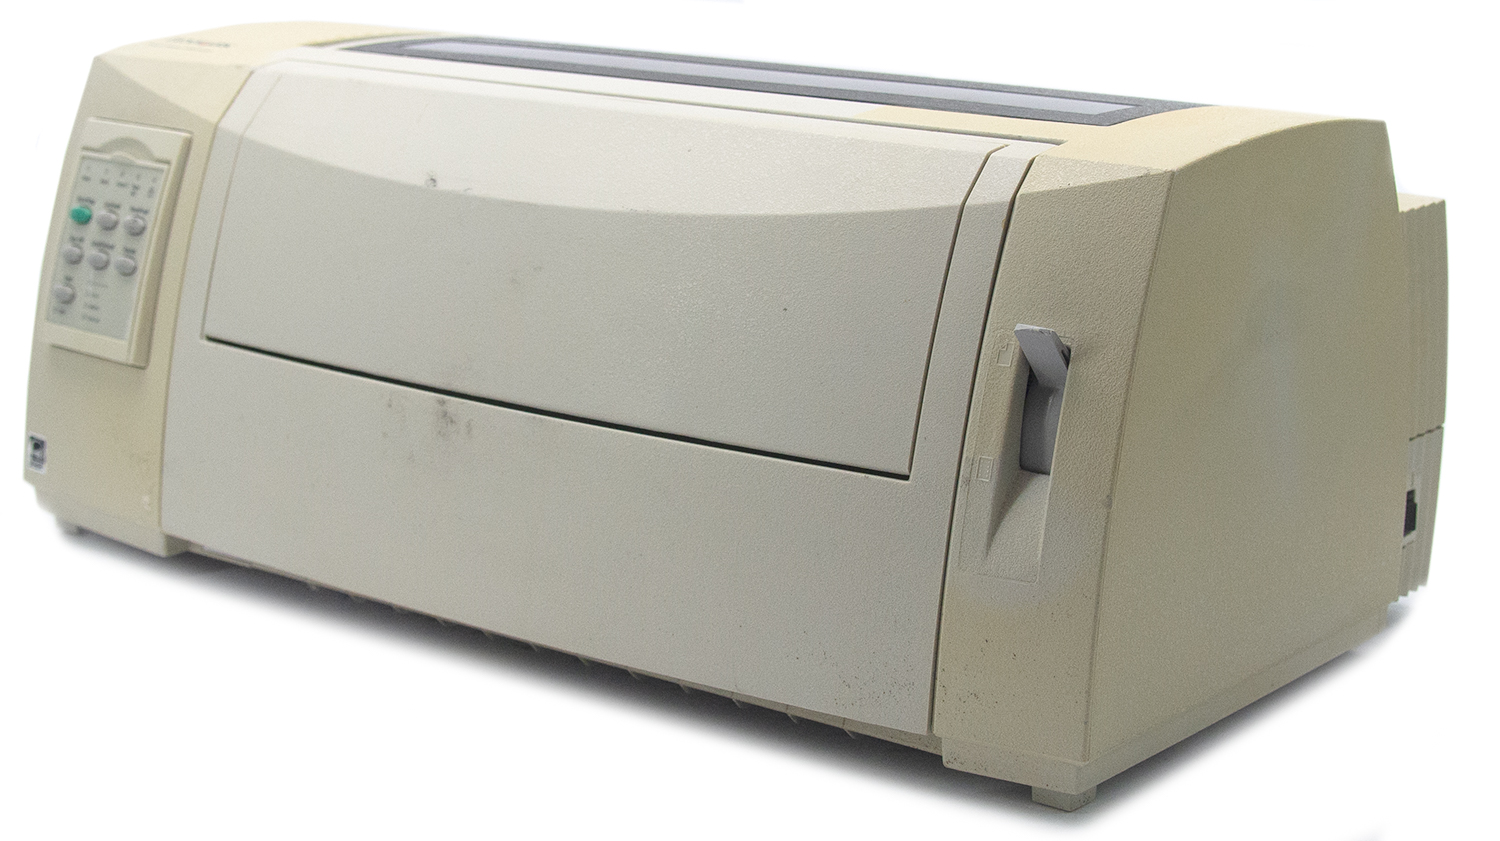 Lexmark Forms Printer 2500 Series Specs